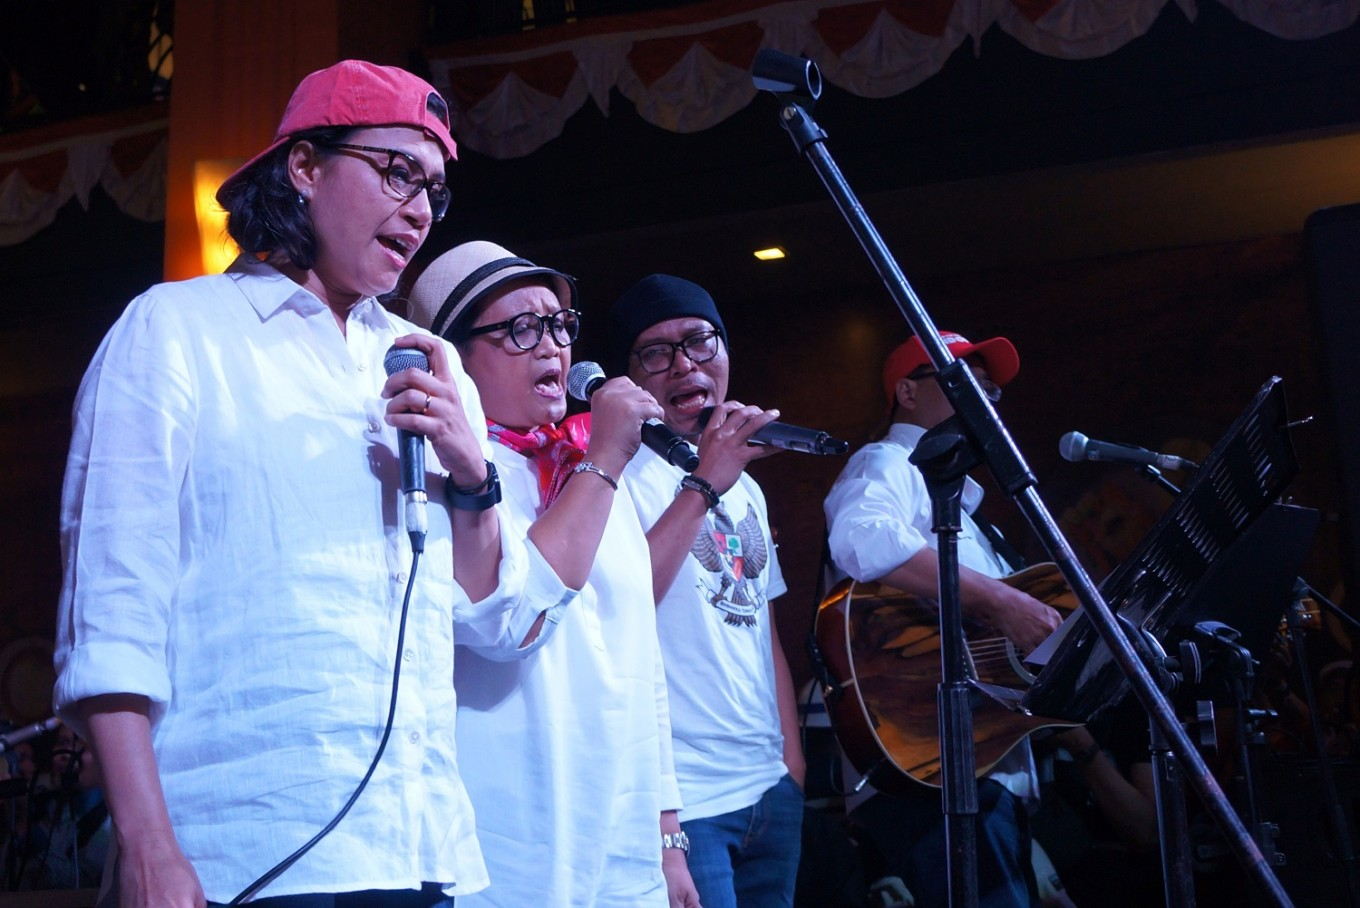 Band of ministers rocks charity concert for Lombok earthquake victims